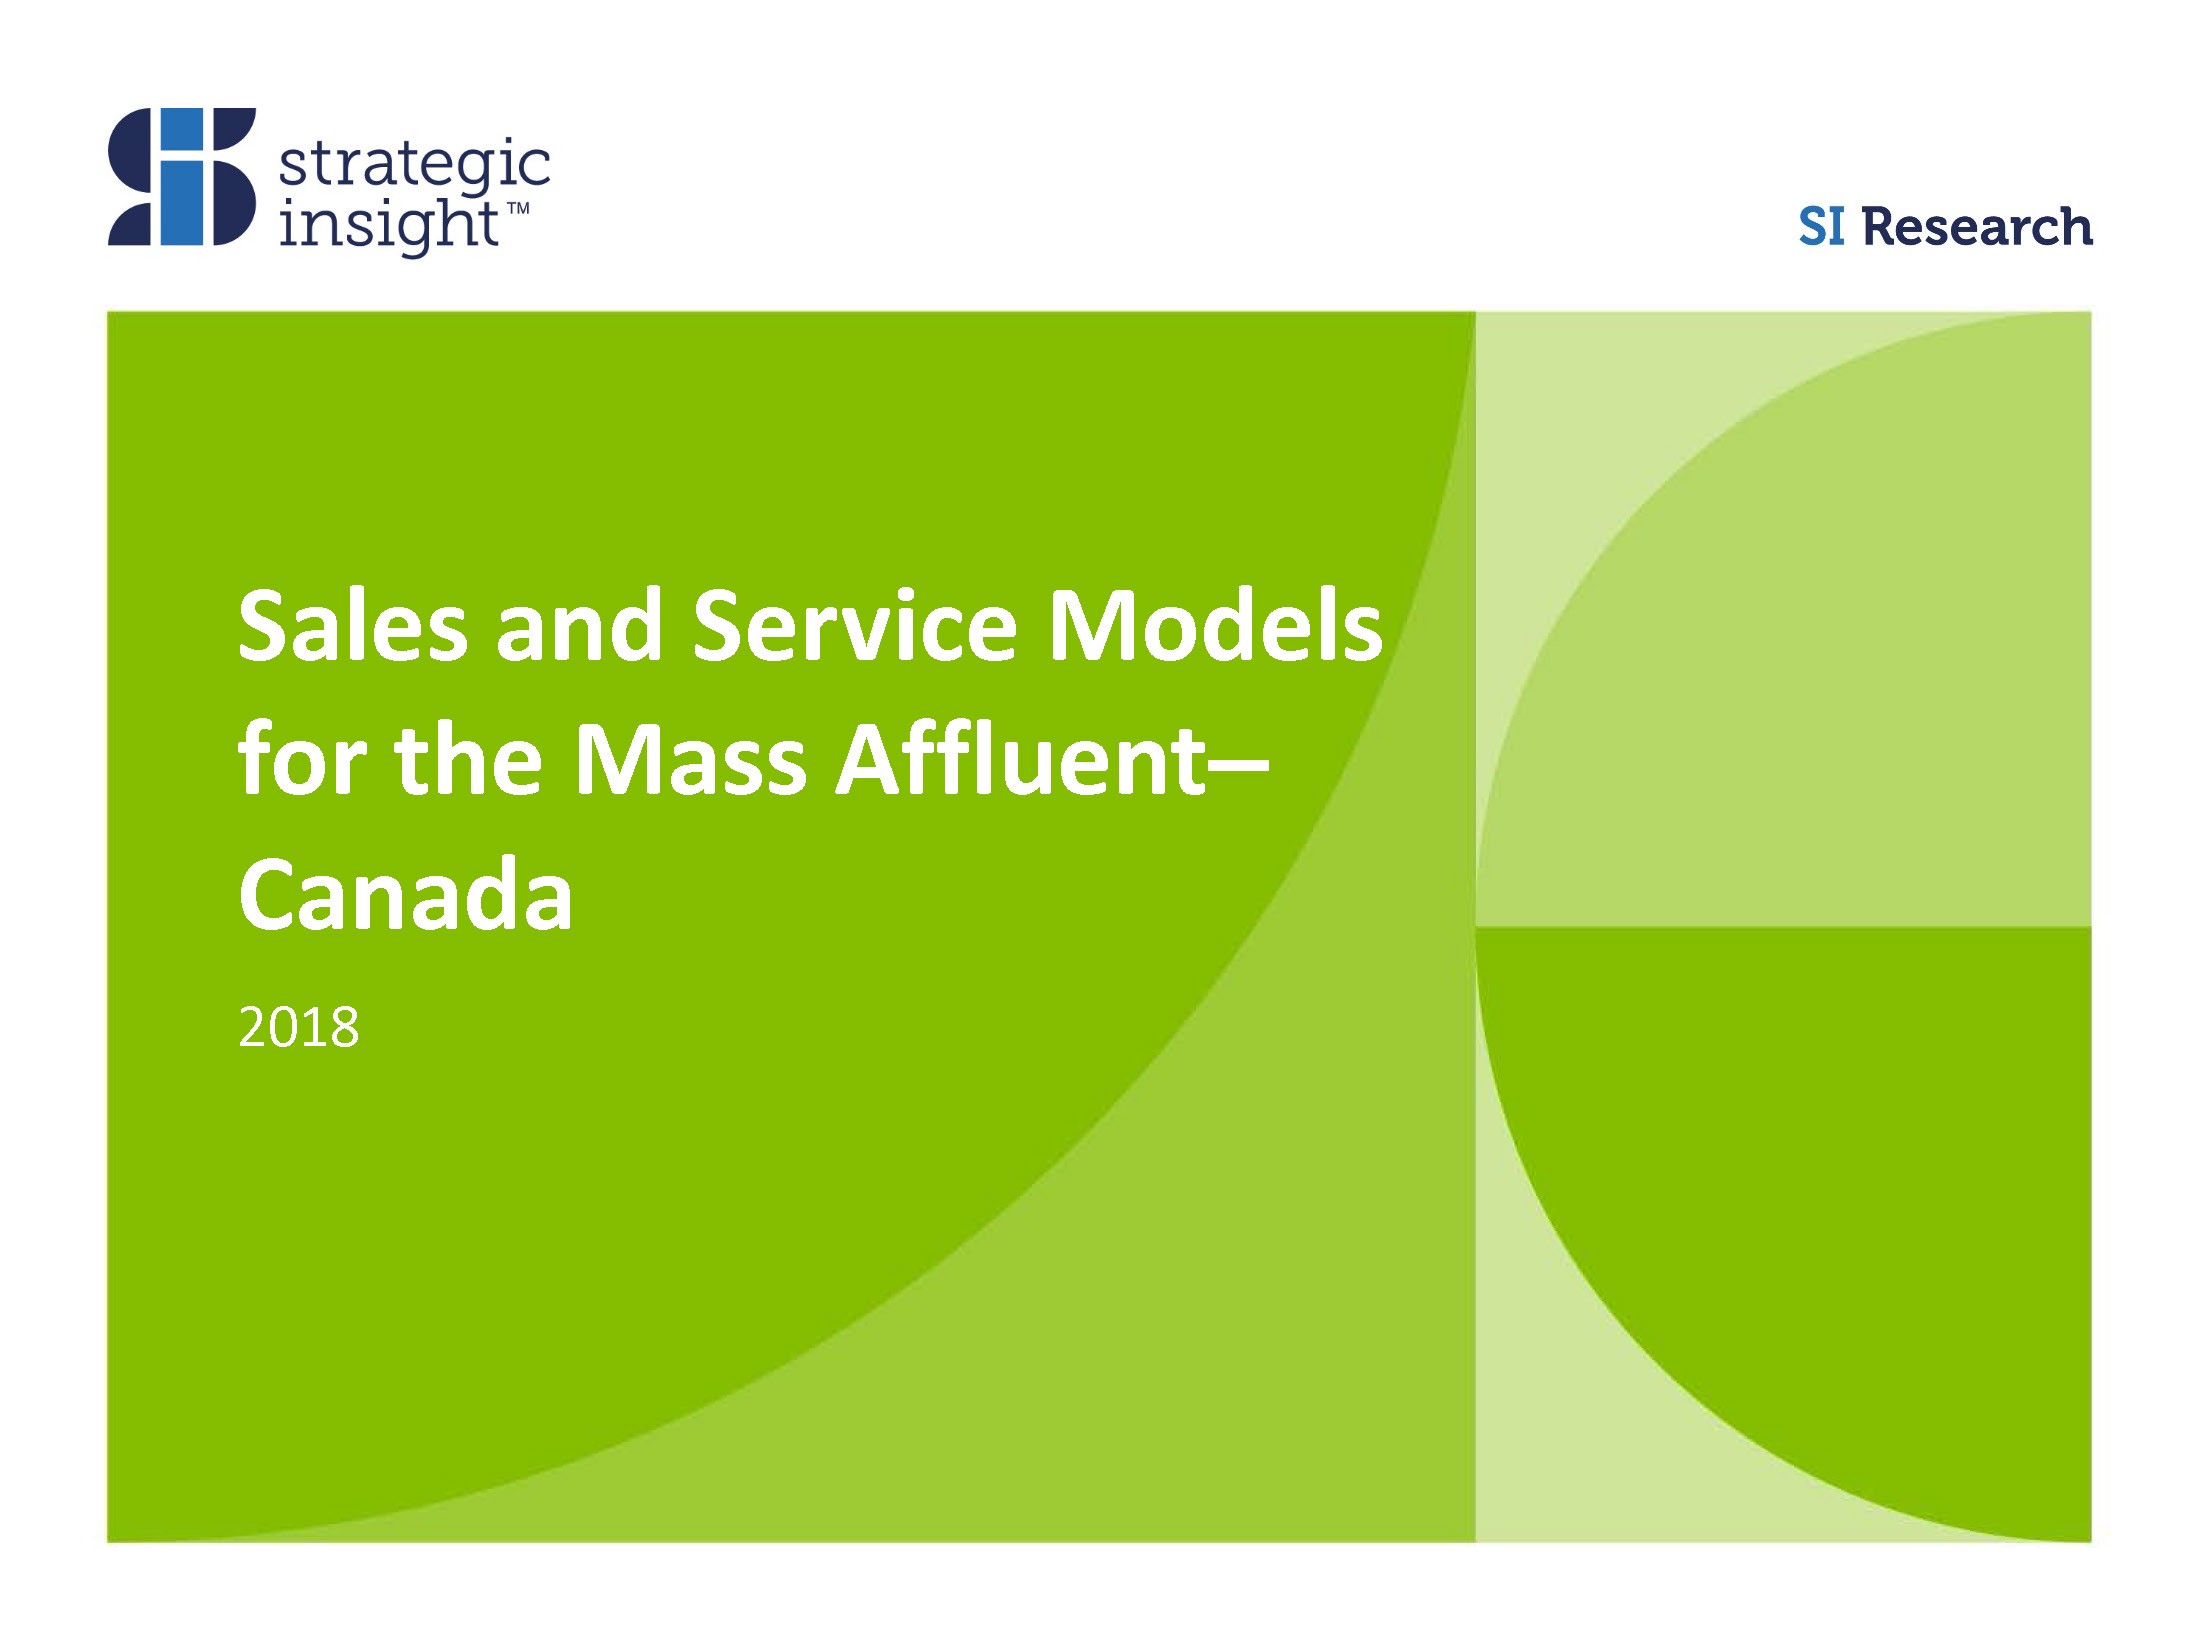 2018 Sales and Service Models for the Mass Affluent–Canada